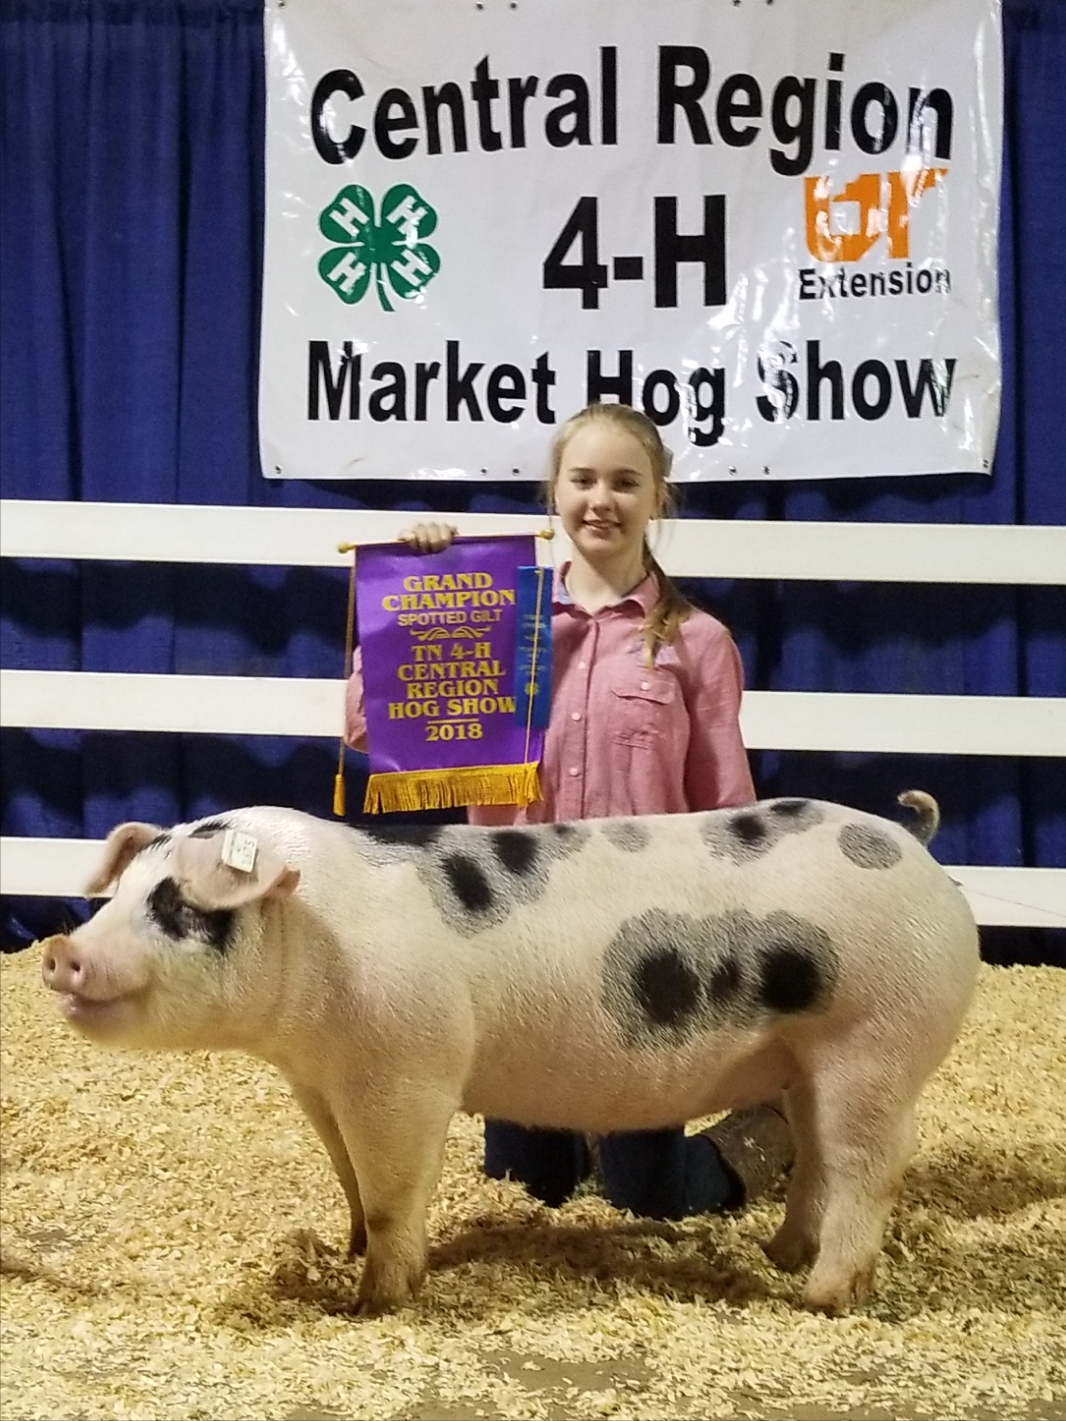 Hannah Sanders 2018 Tennessee Central Region Show Central Region Champion Spot Gilt 2018 Tennessee State Show  Reserve Champion AOB Gilt